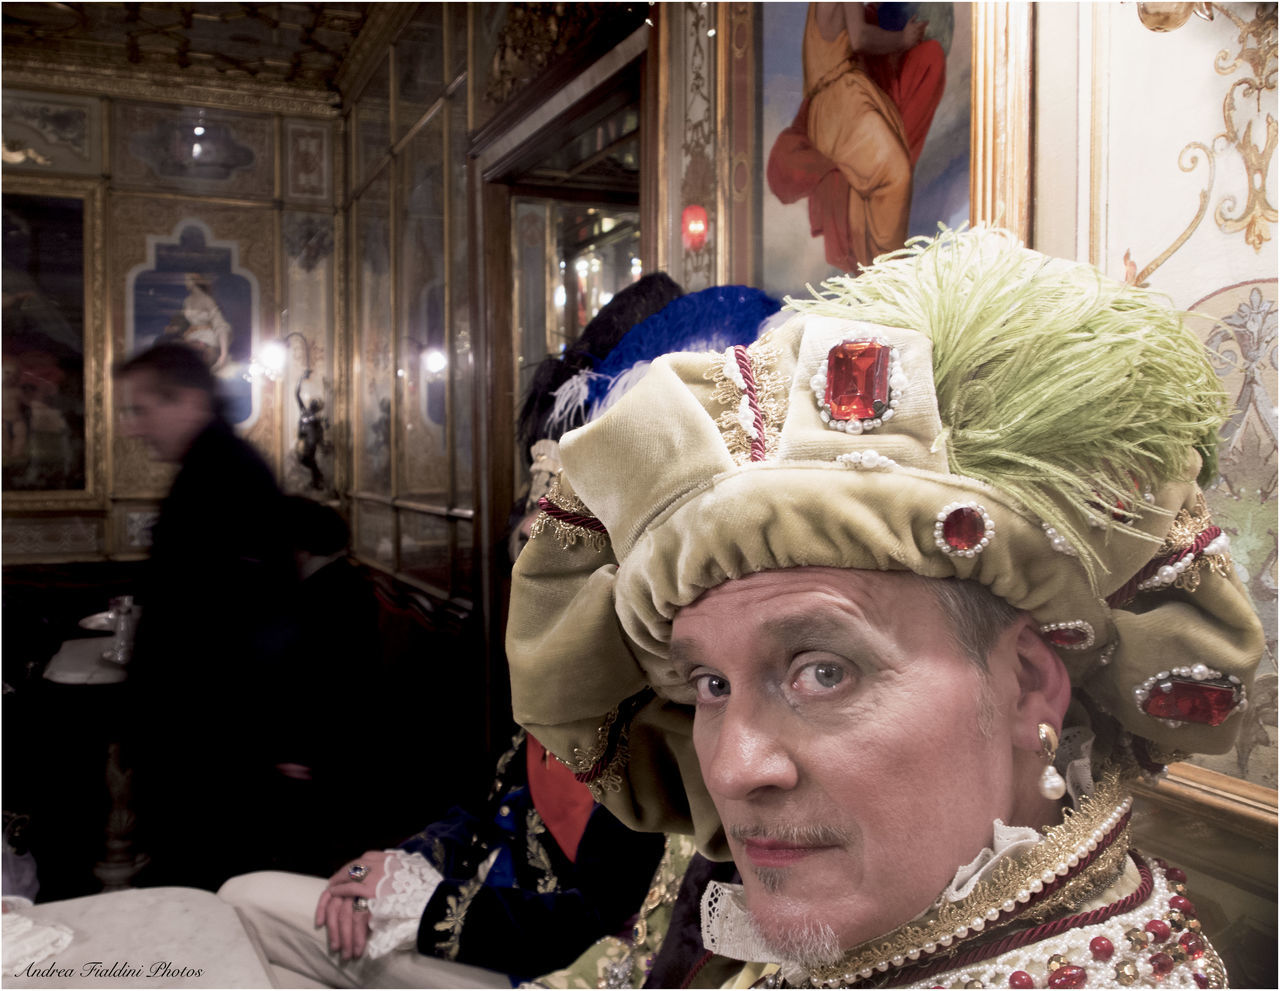 Carnevale Di Venezia Headwear Human Body Part Human Face Italy Looking At Camera Night One Person People Pepole Pepole Photography Period Costume Portrait Queen - Royal Person Tradiciones Veneto Italy Venezia Venezia #venice Venezia Carnival Venezia Carnival Mask Venezia Italy Venezia Venice